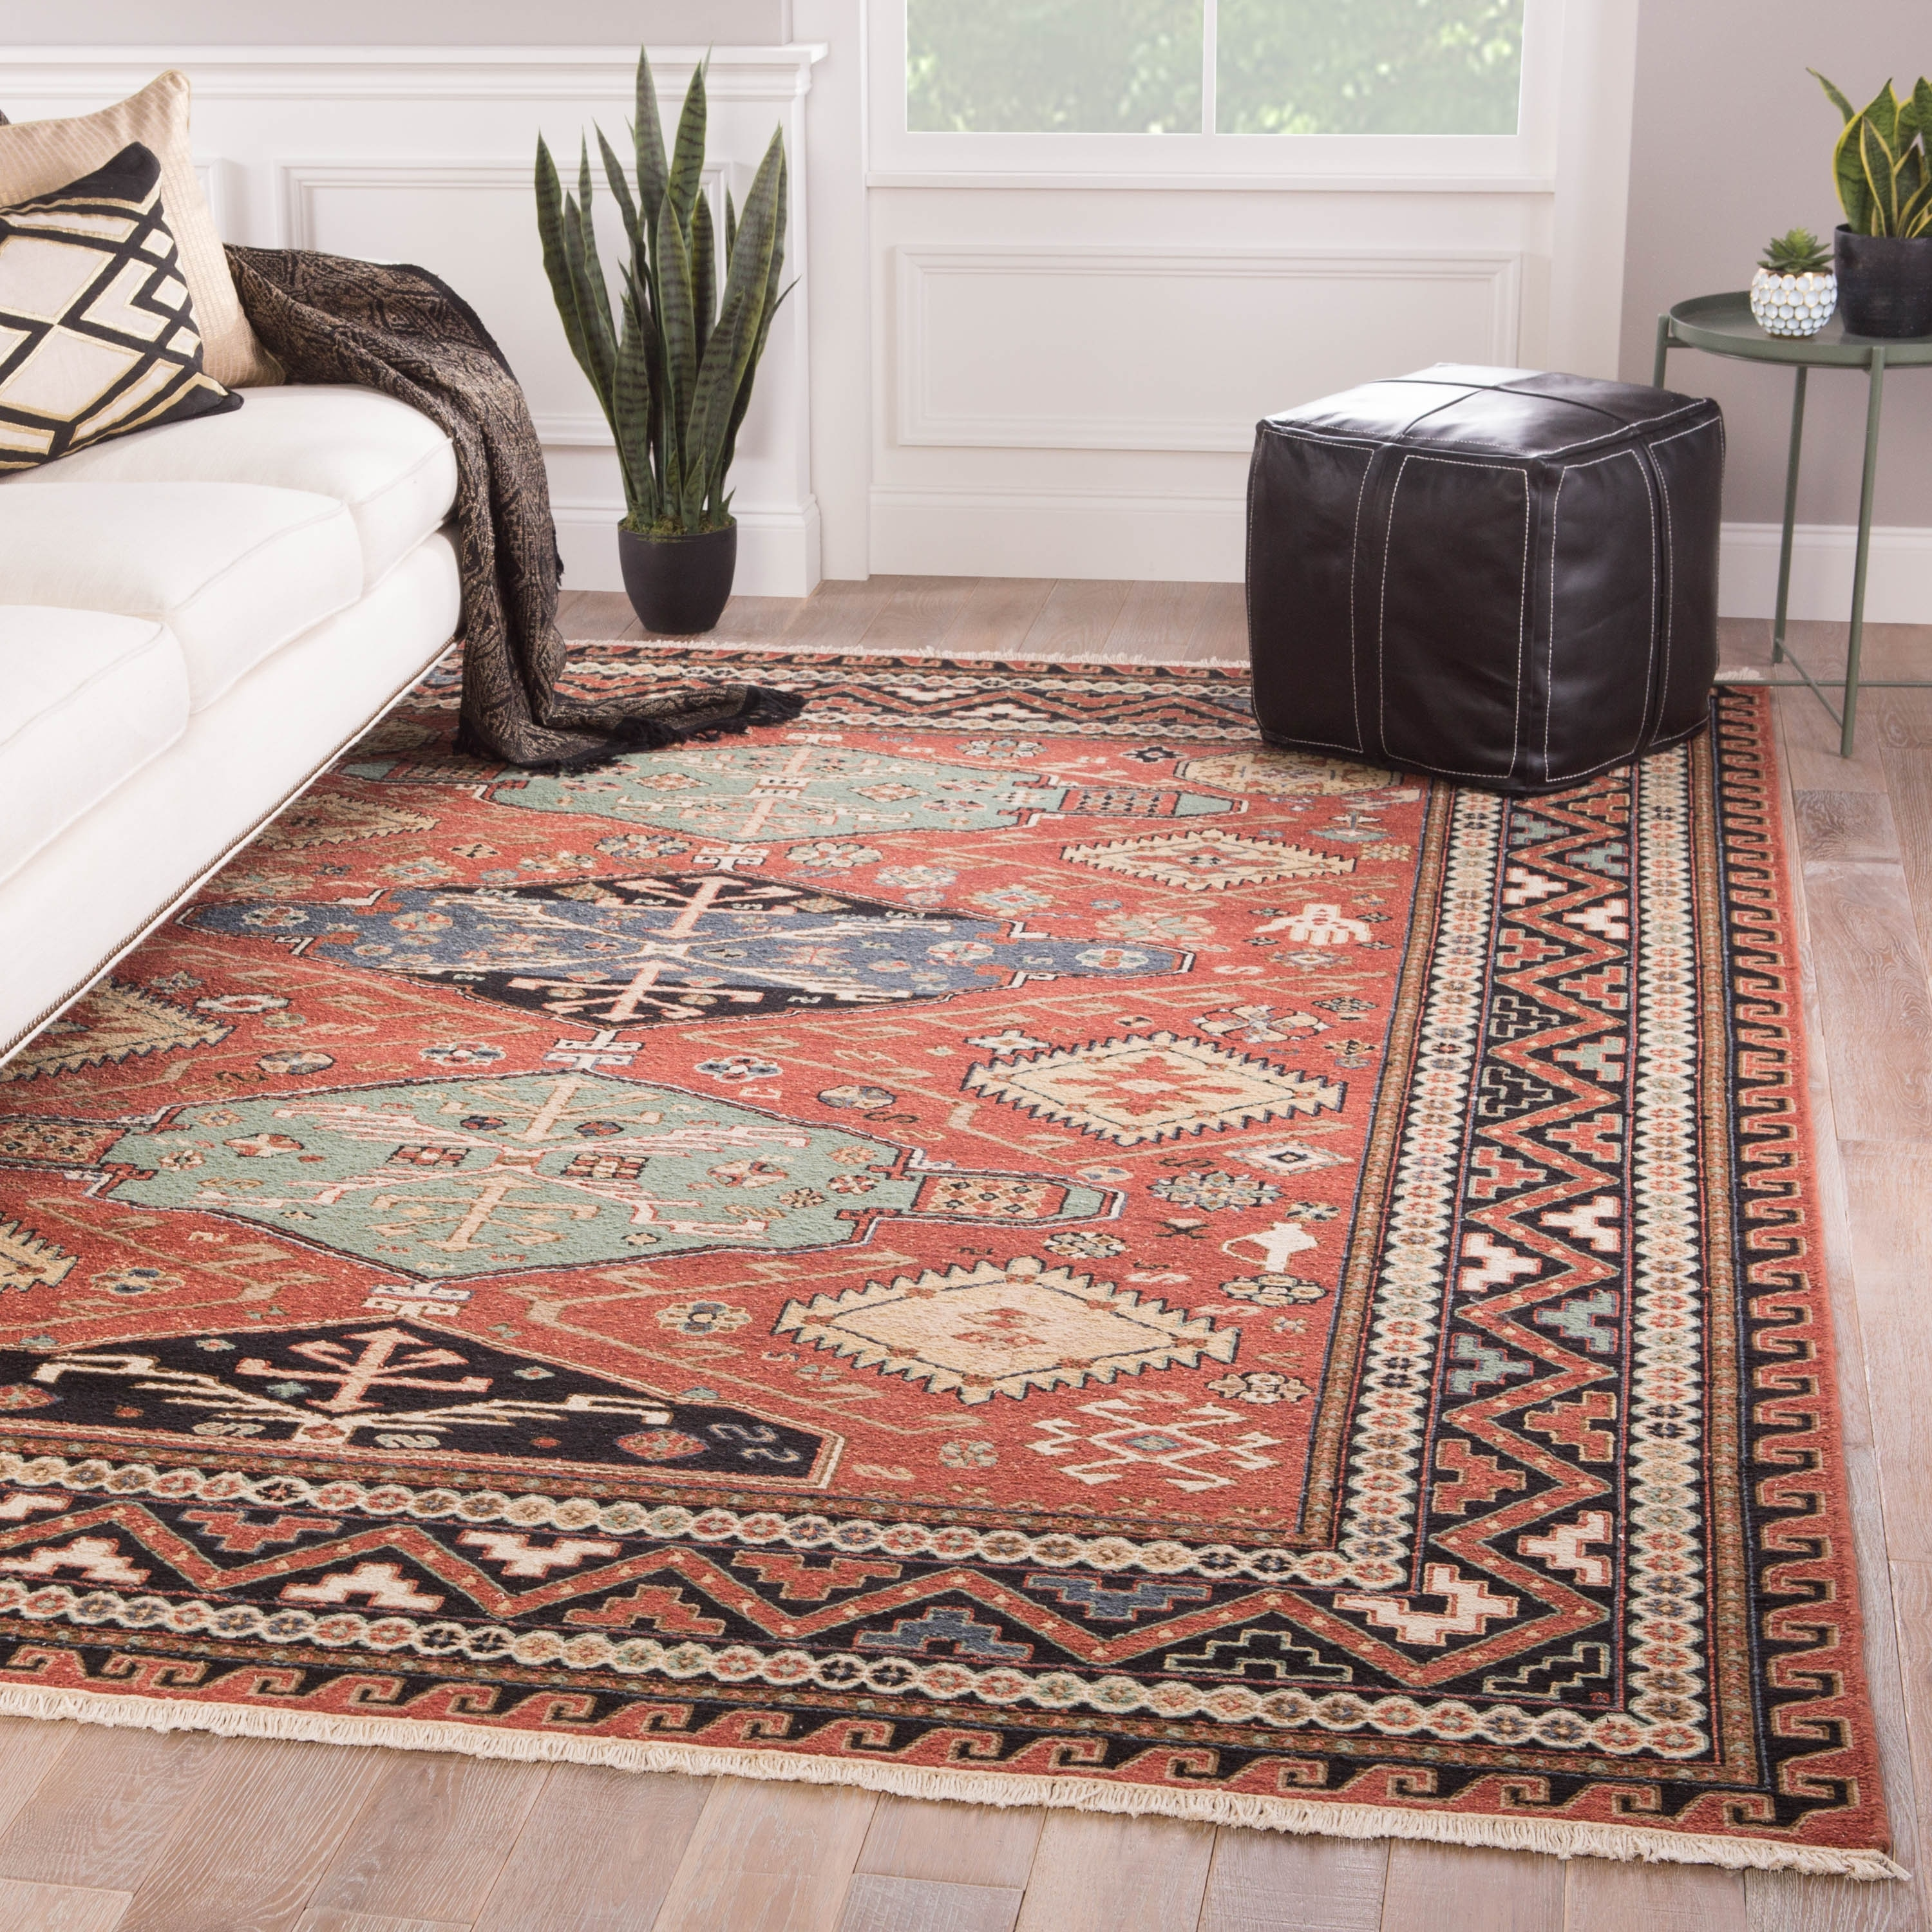 Kashan Hand Knotted Medallion Red Blue Area Rug Overstock 21703766